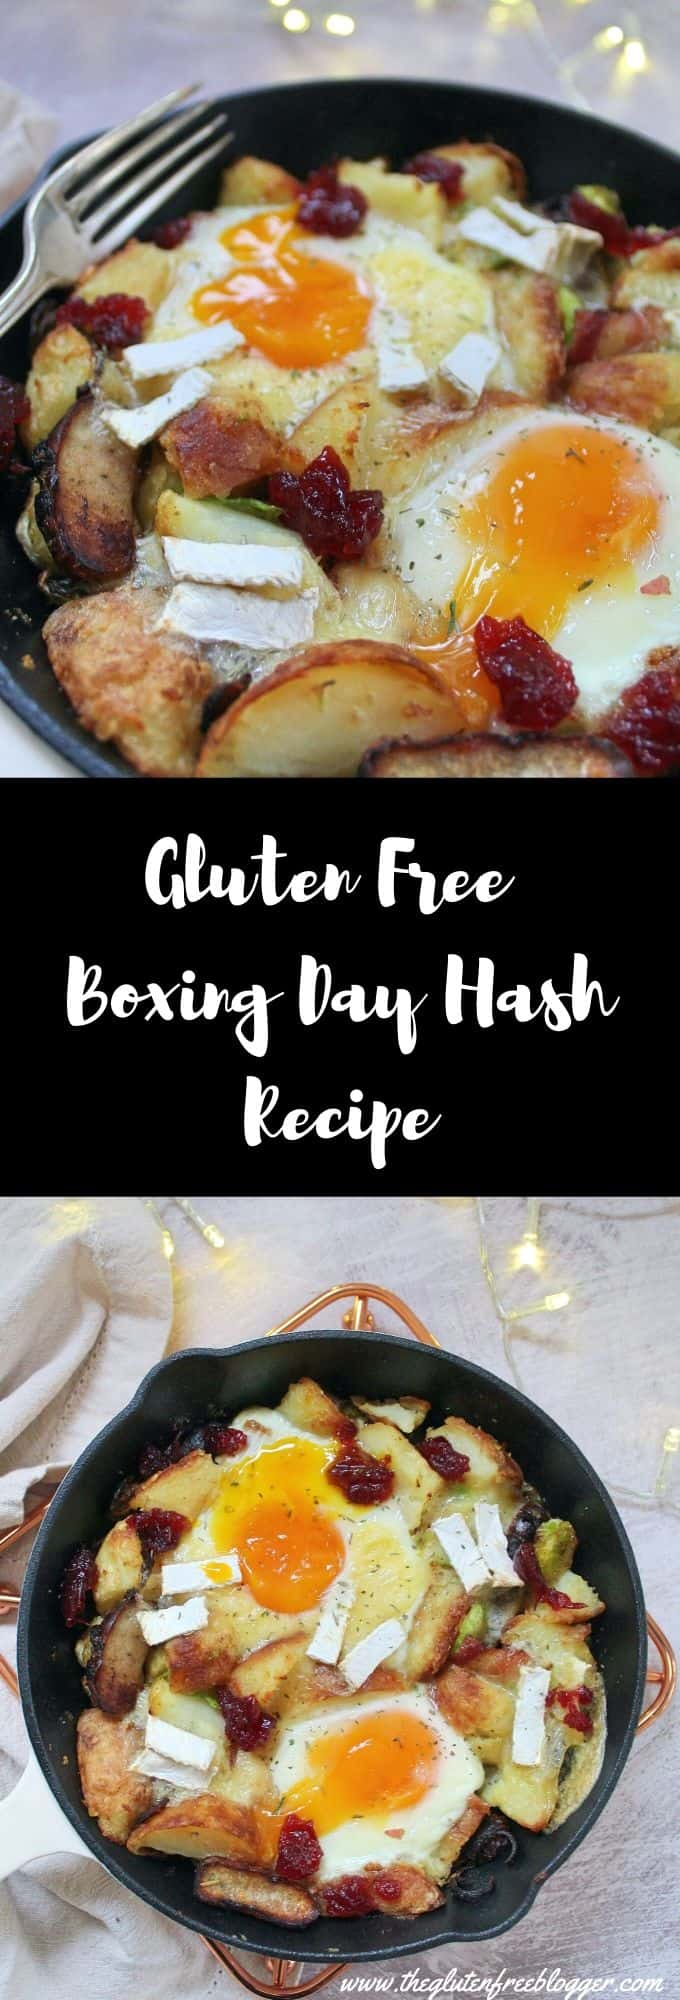 gluten free Boxing Day hash recipe - Christmas dinner leftovers recipe reducing food waste